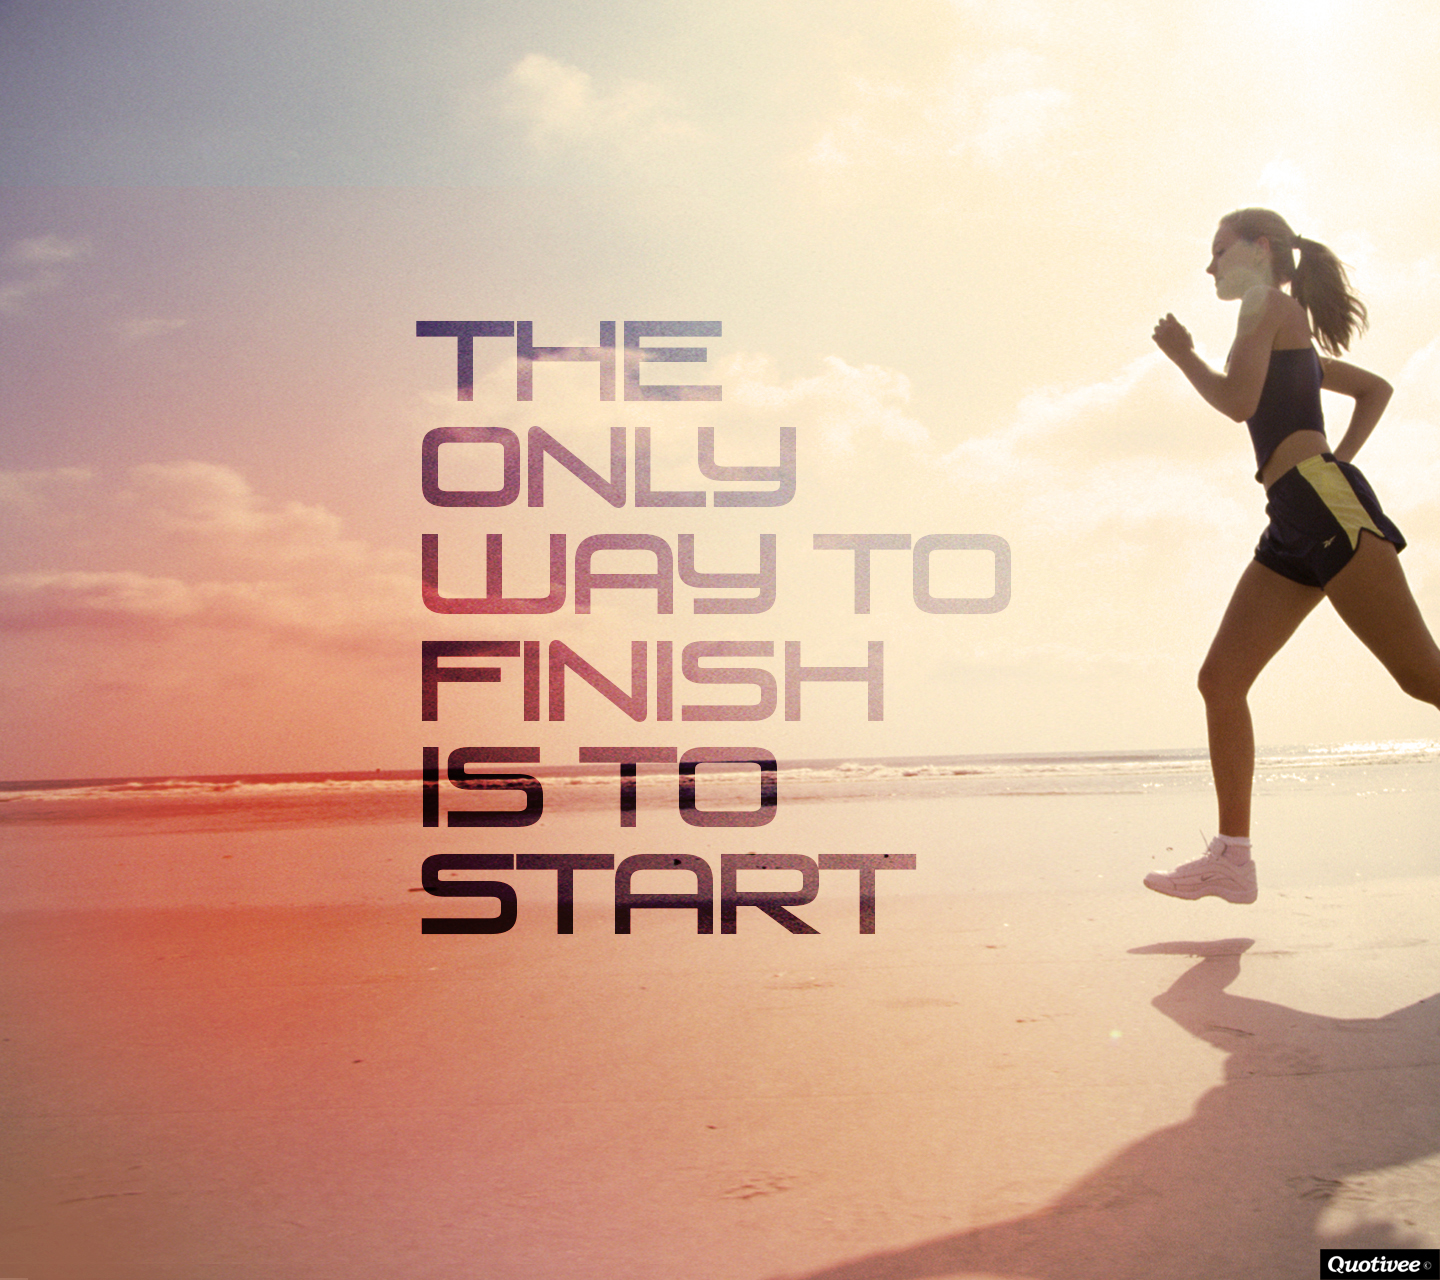 Motivational Quotes Wallpaper Download: Group Fitness Quotes. QuotesGram